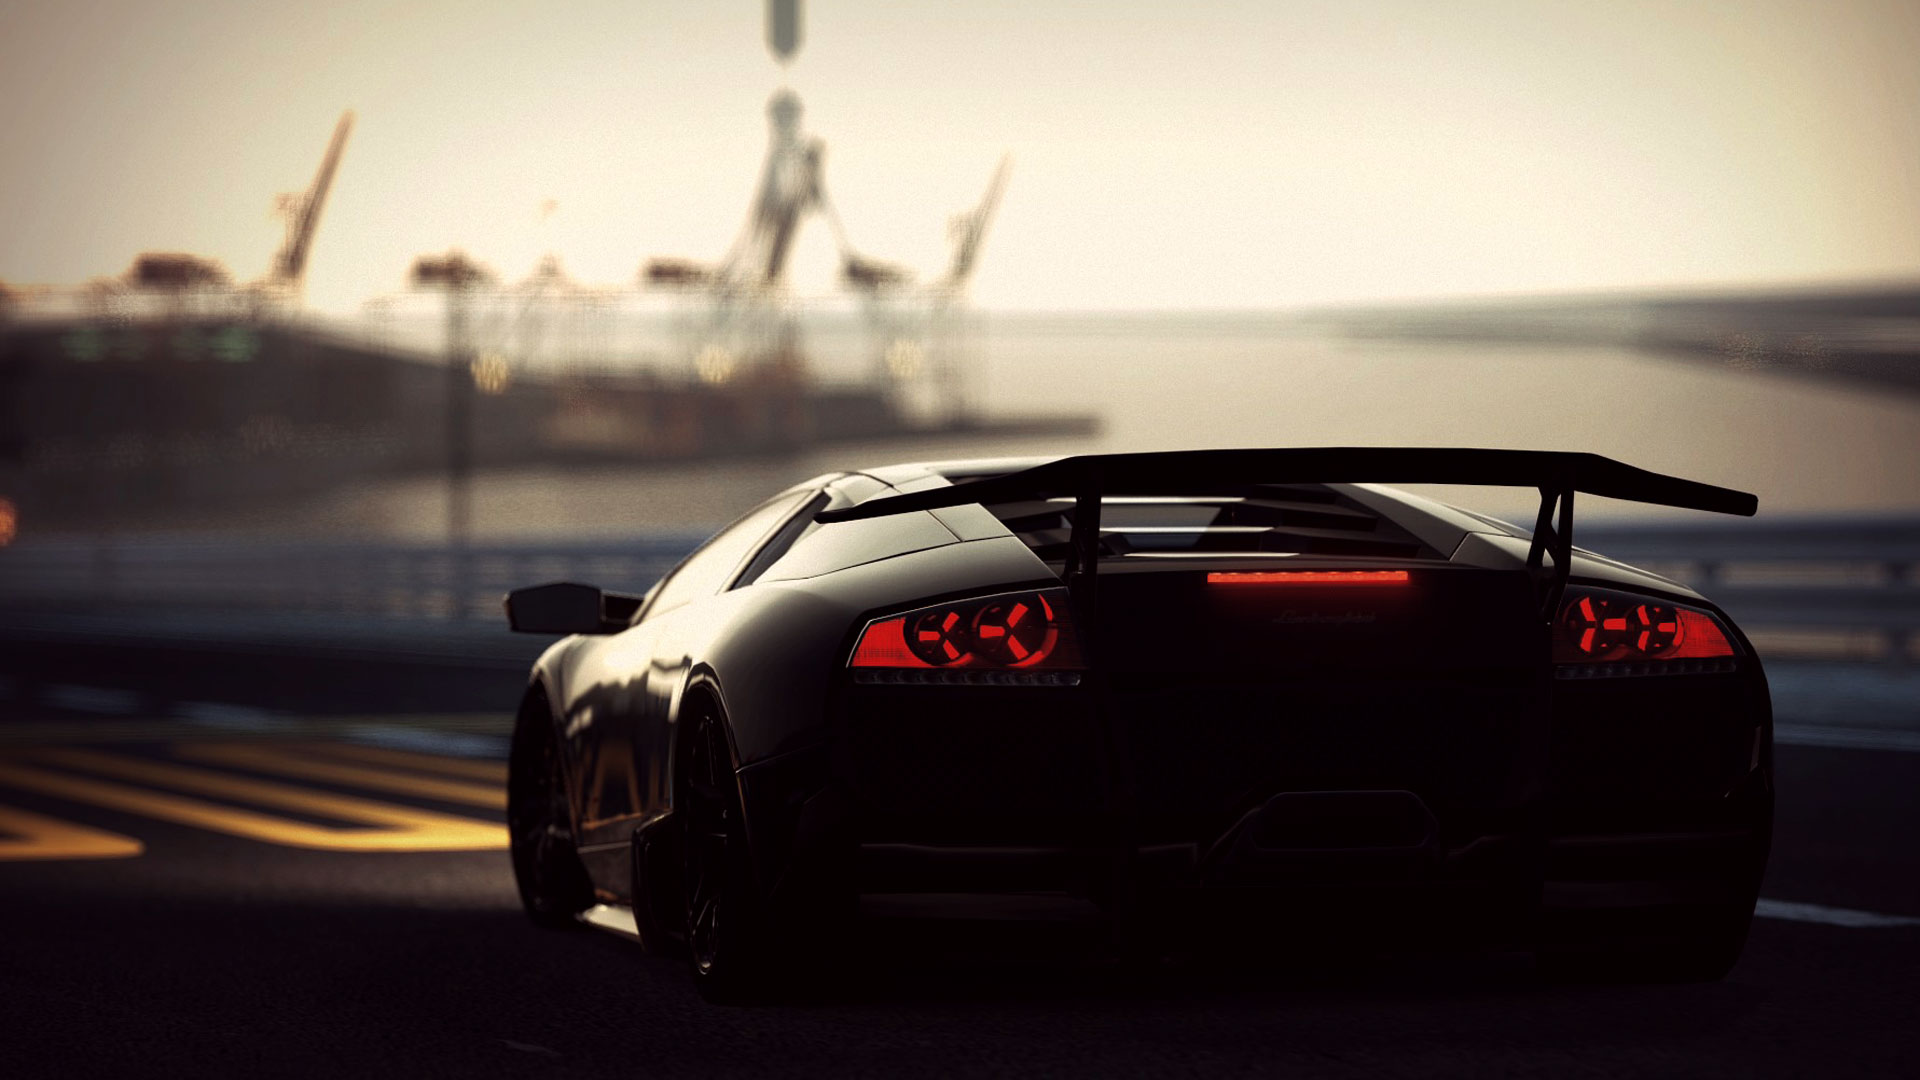 Lamborghini Dark wallpapers HD 1920x1080